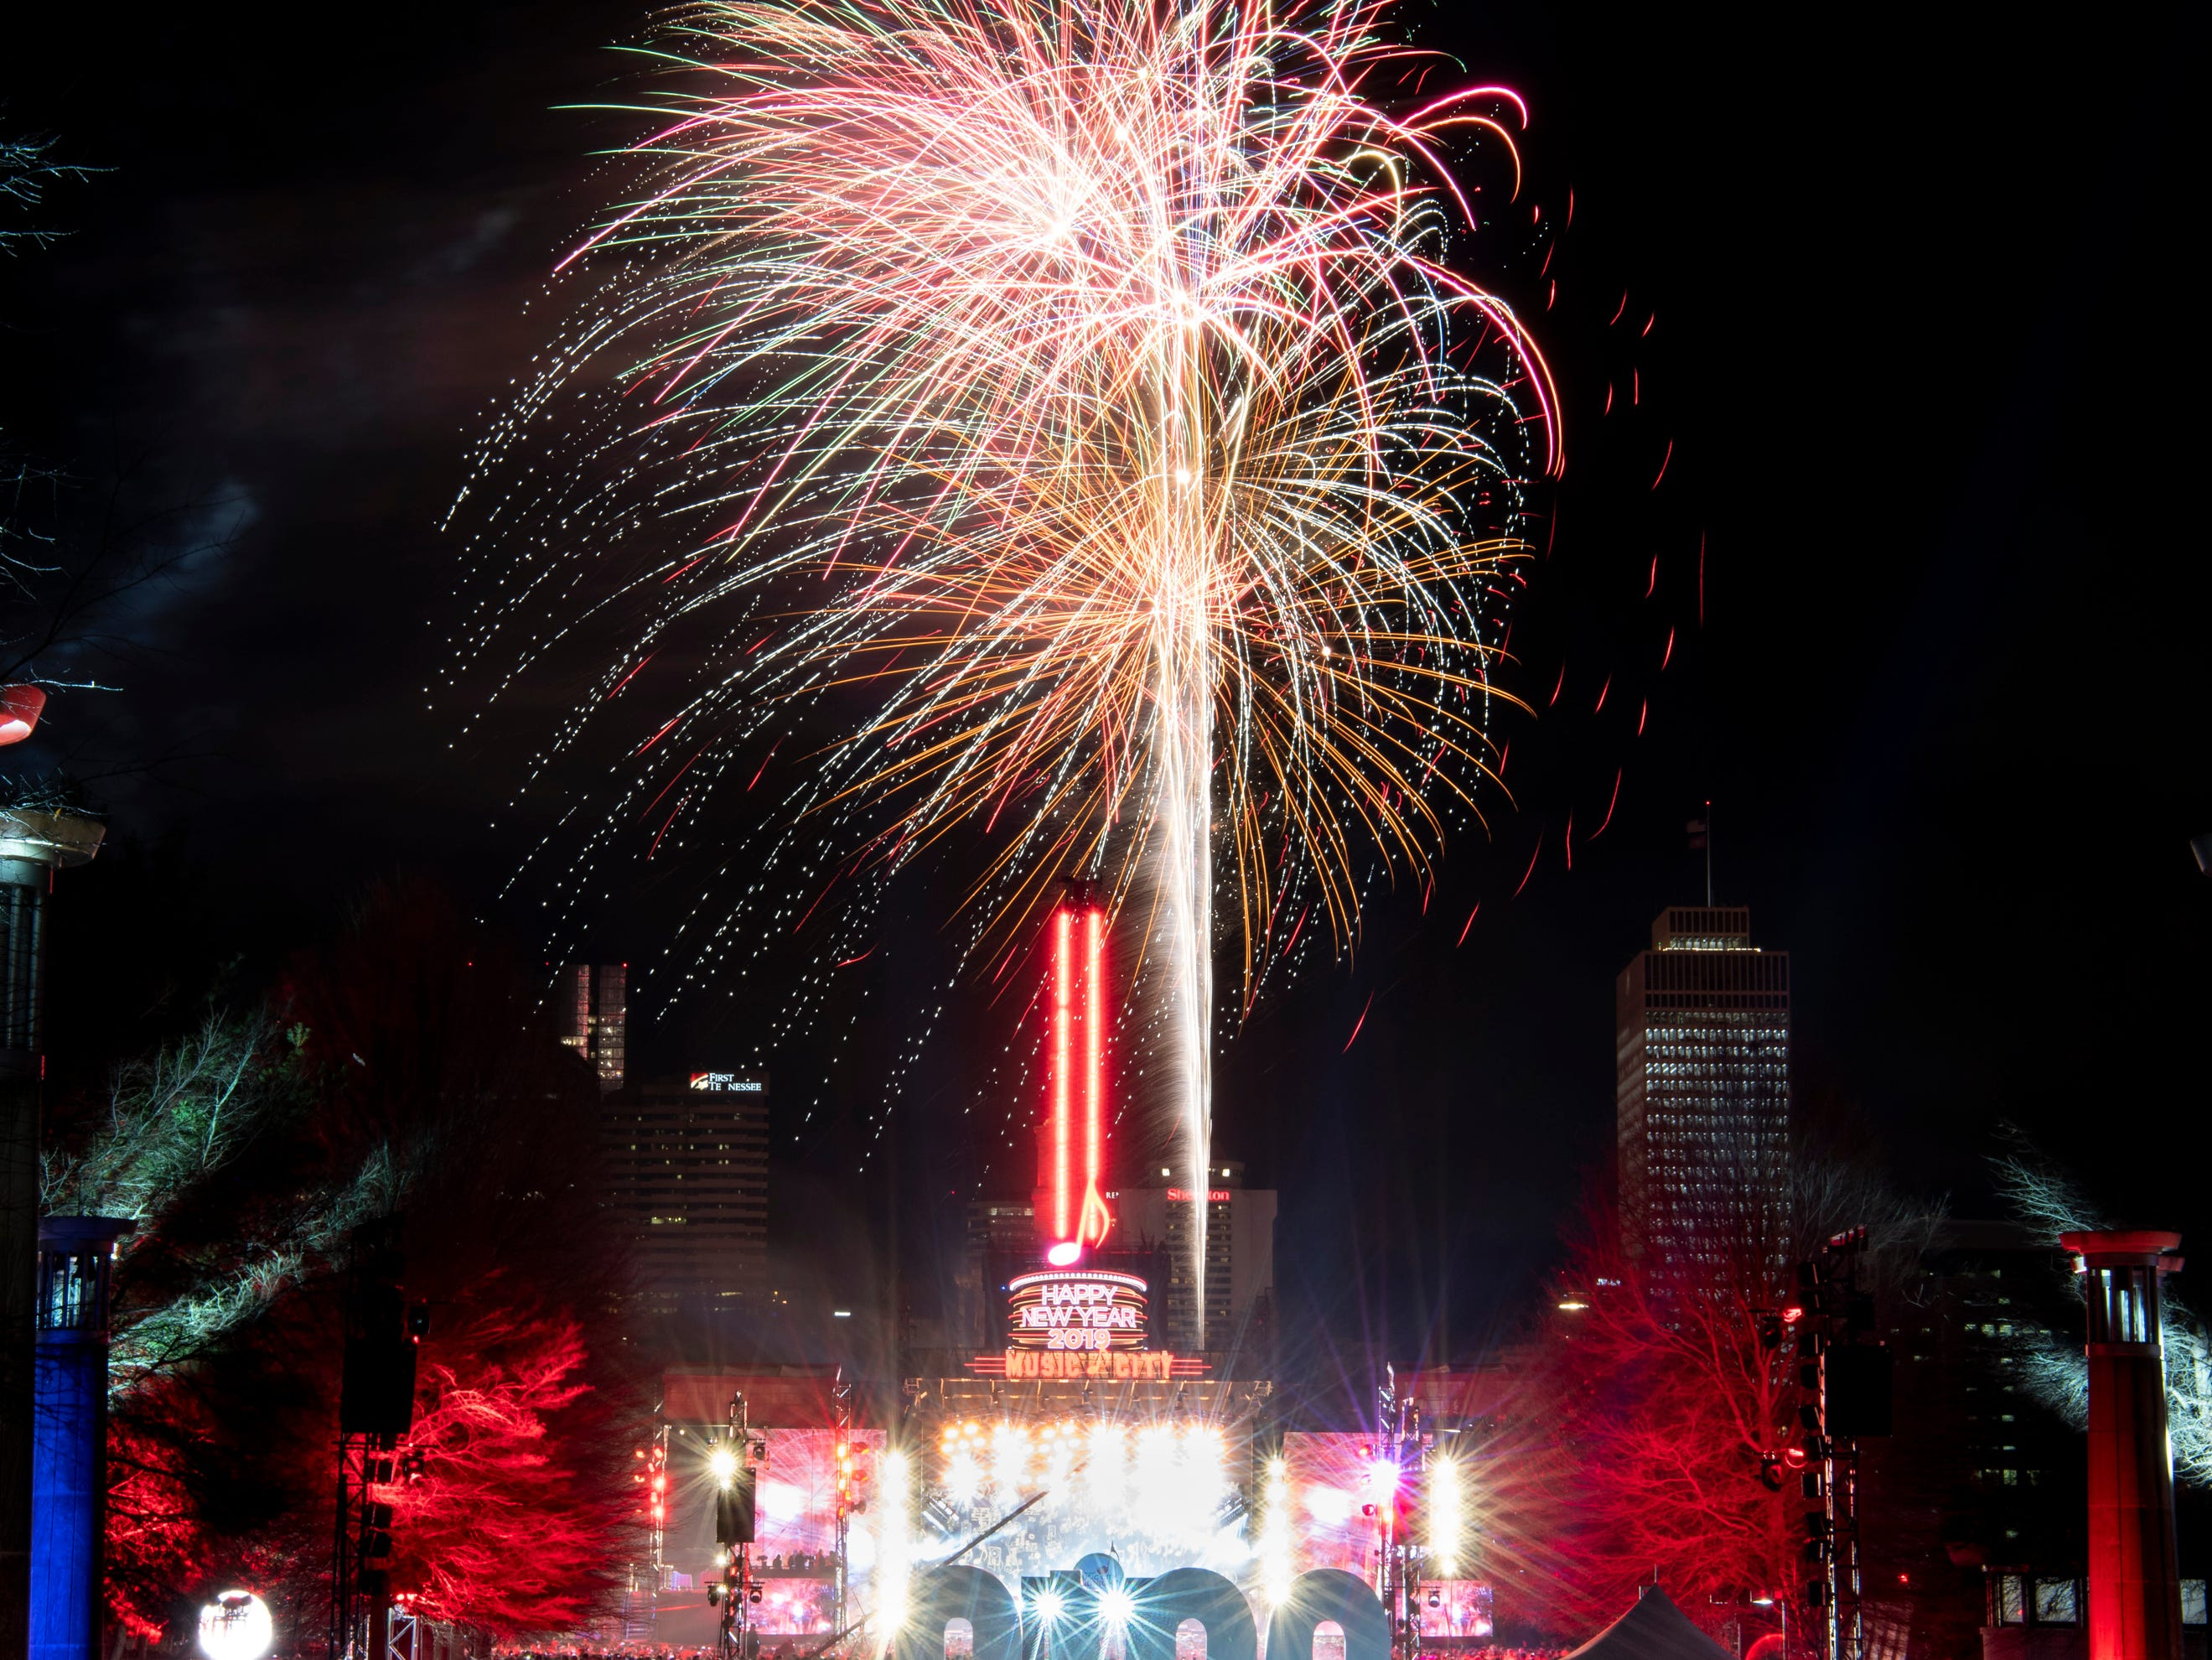 Fireworks light up the sky during the Jack Daniel's Music City Midnight: New Year's Eve event at Bicentennial Capitol Mall State Park in Nashville, Tenn., Tuesday, Jan. 1, 2019.